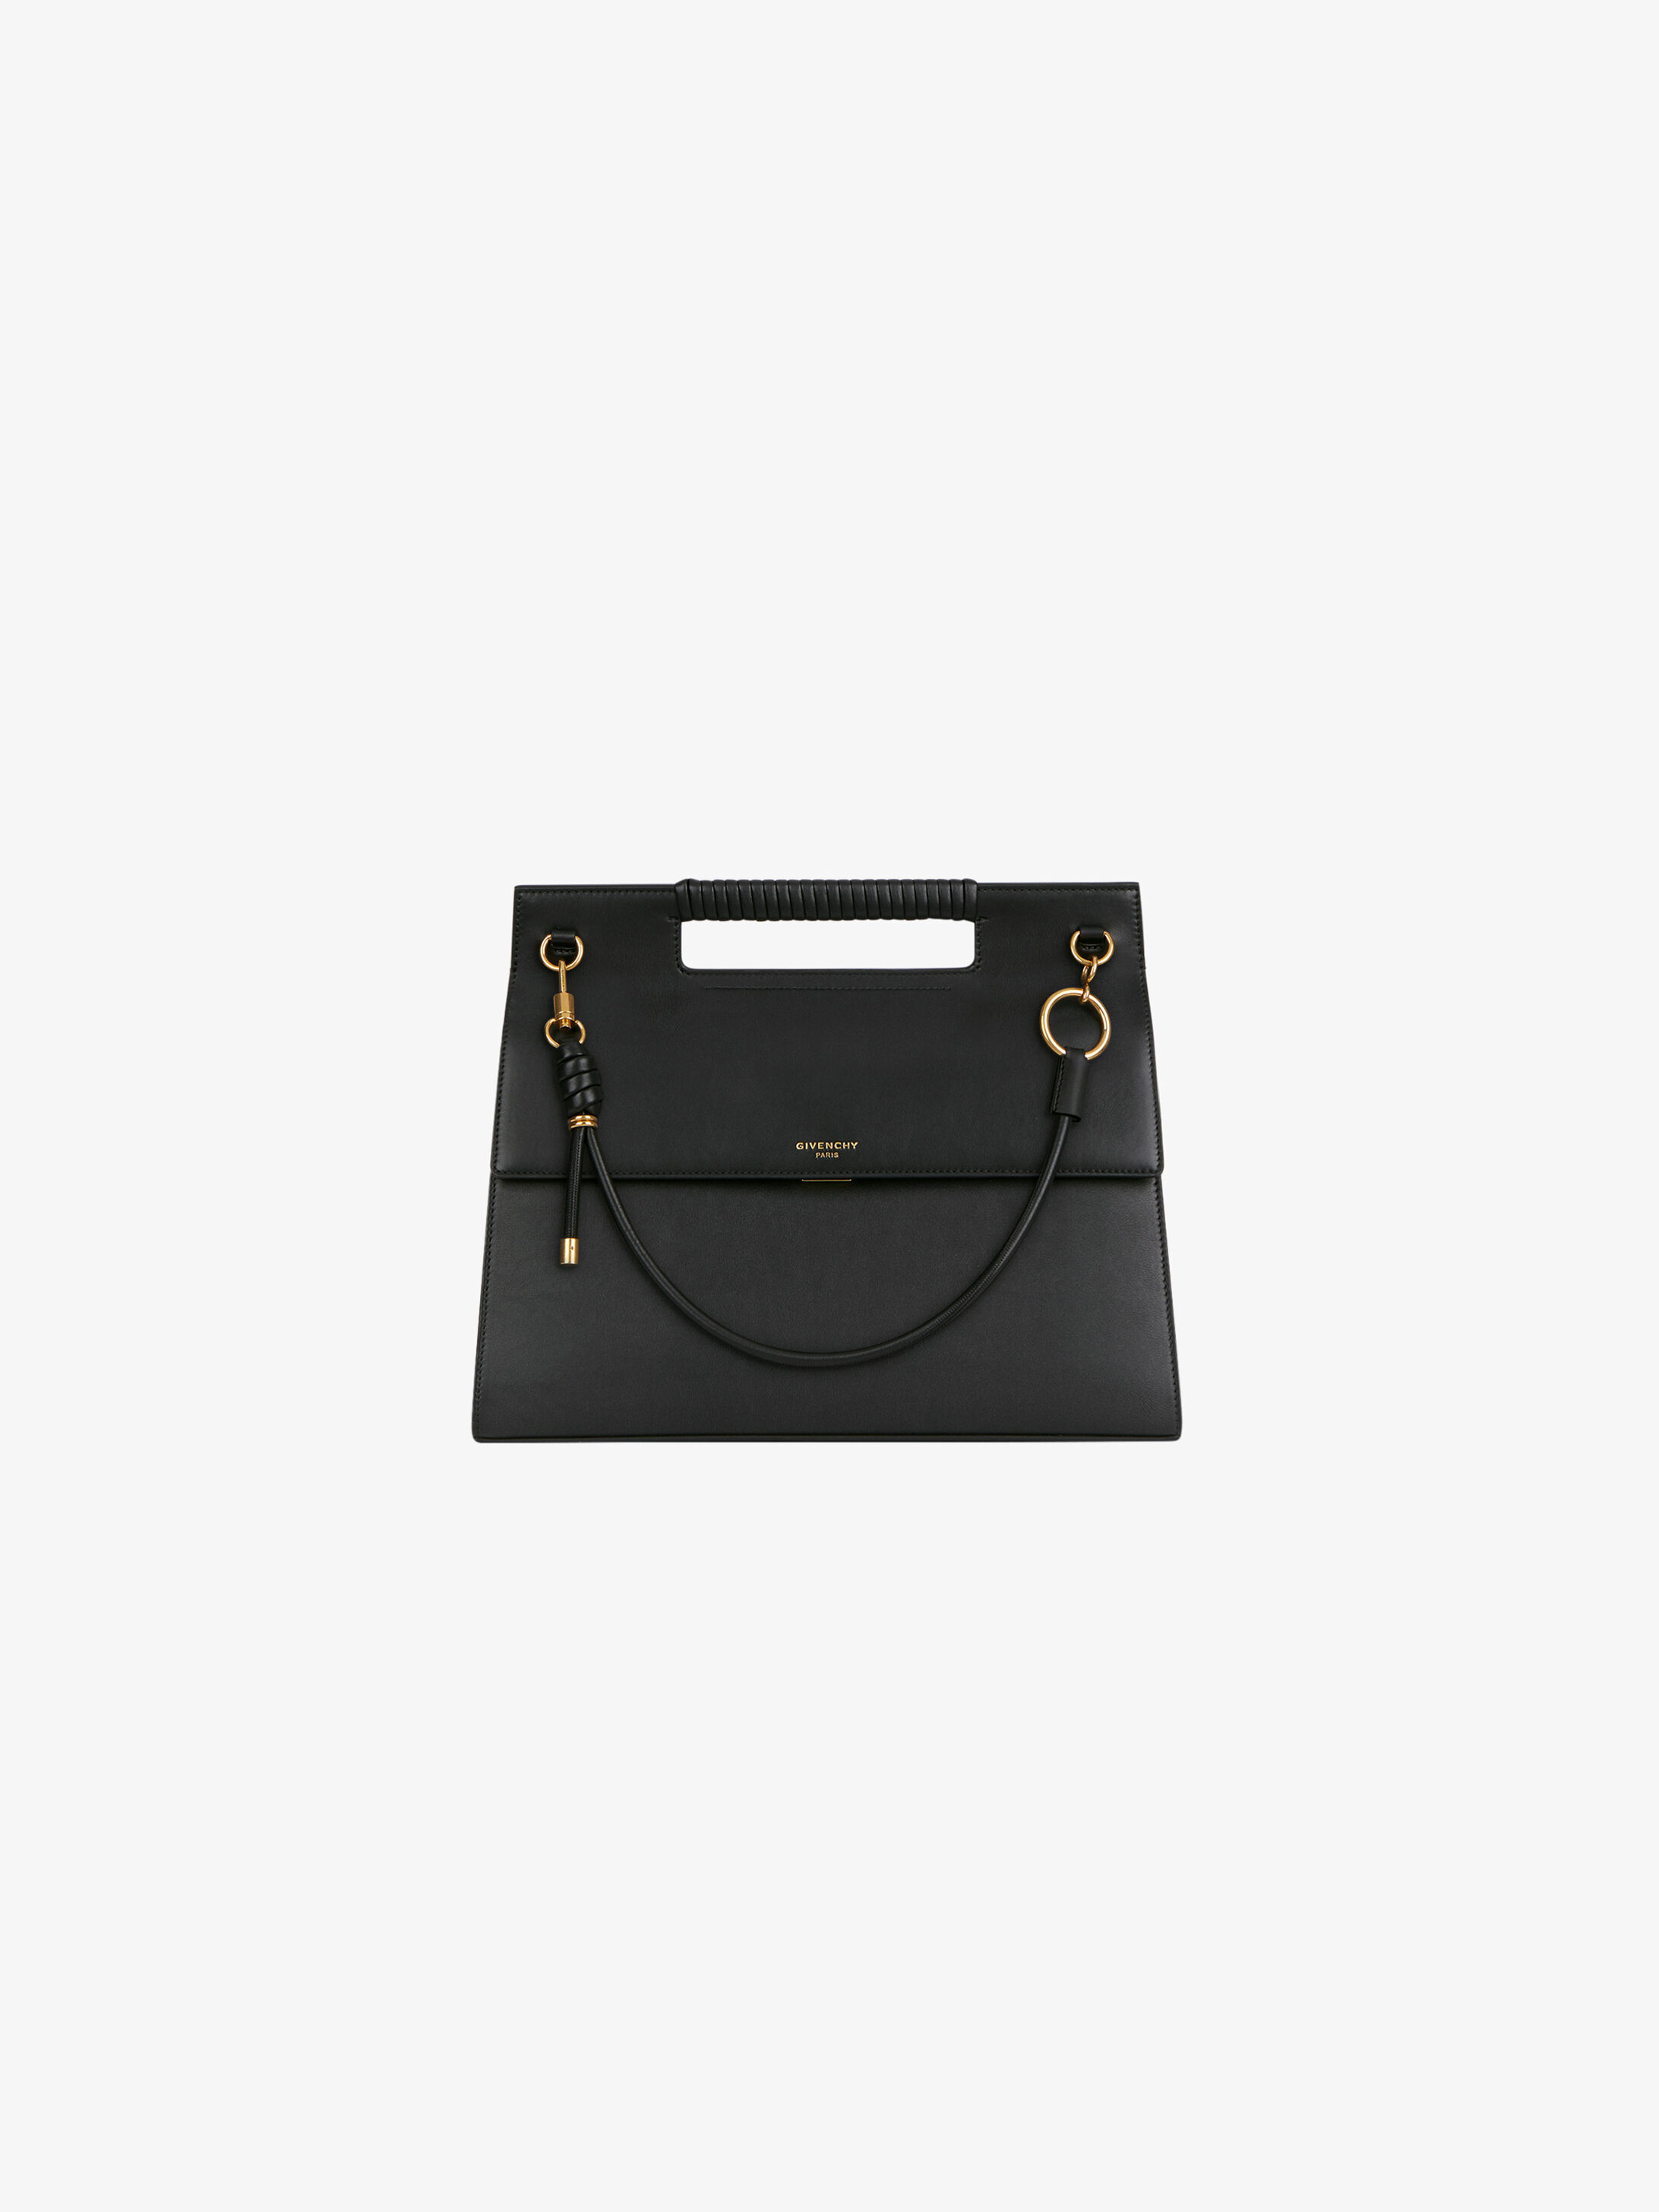 a15d5963b70 Women's Handbags collection by Givenchy. | GIVENCHY Paris